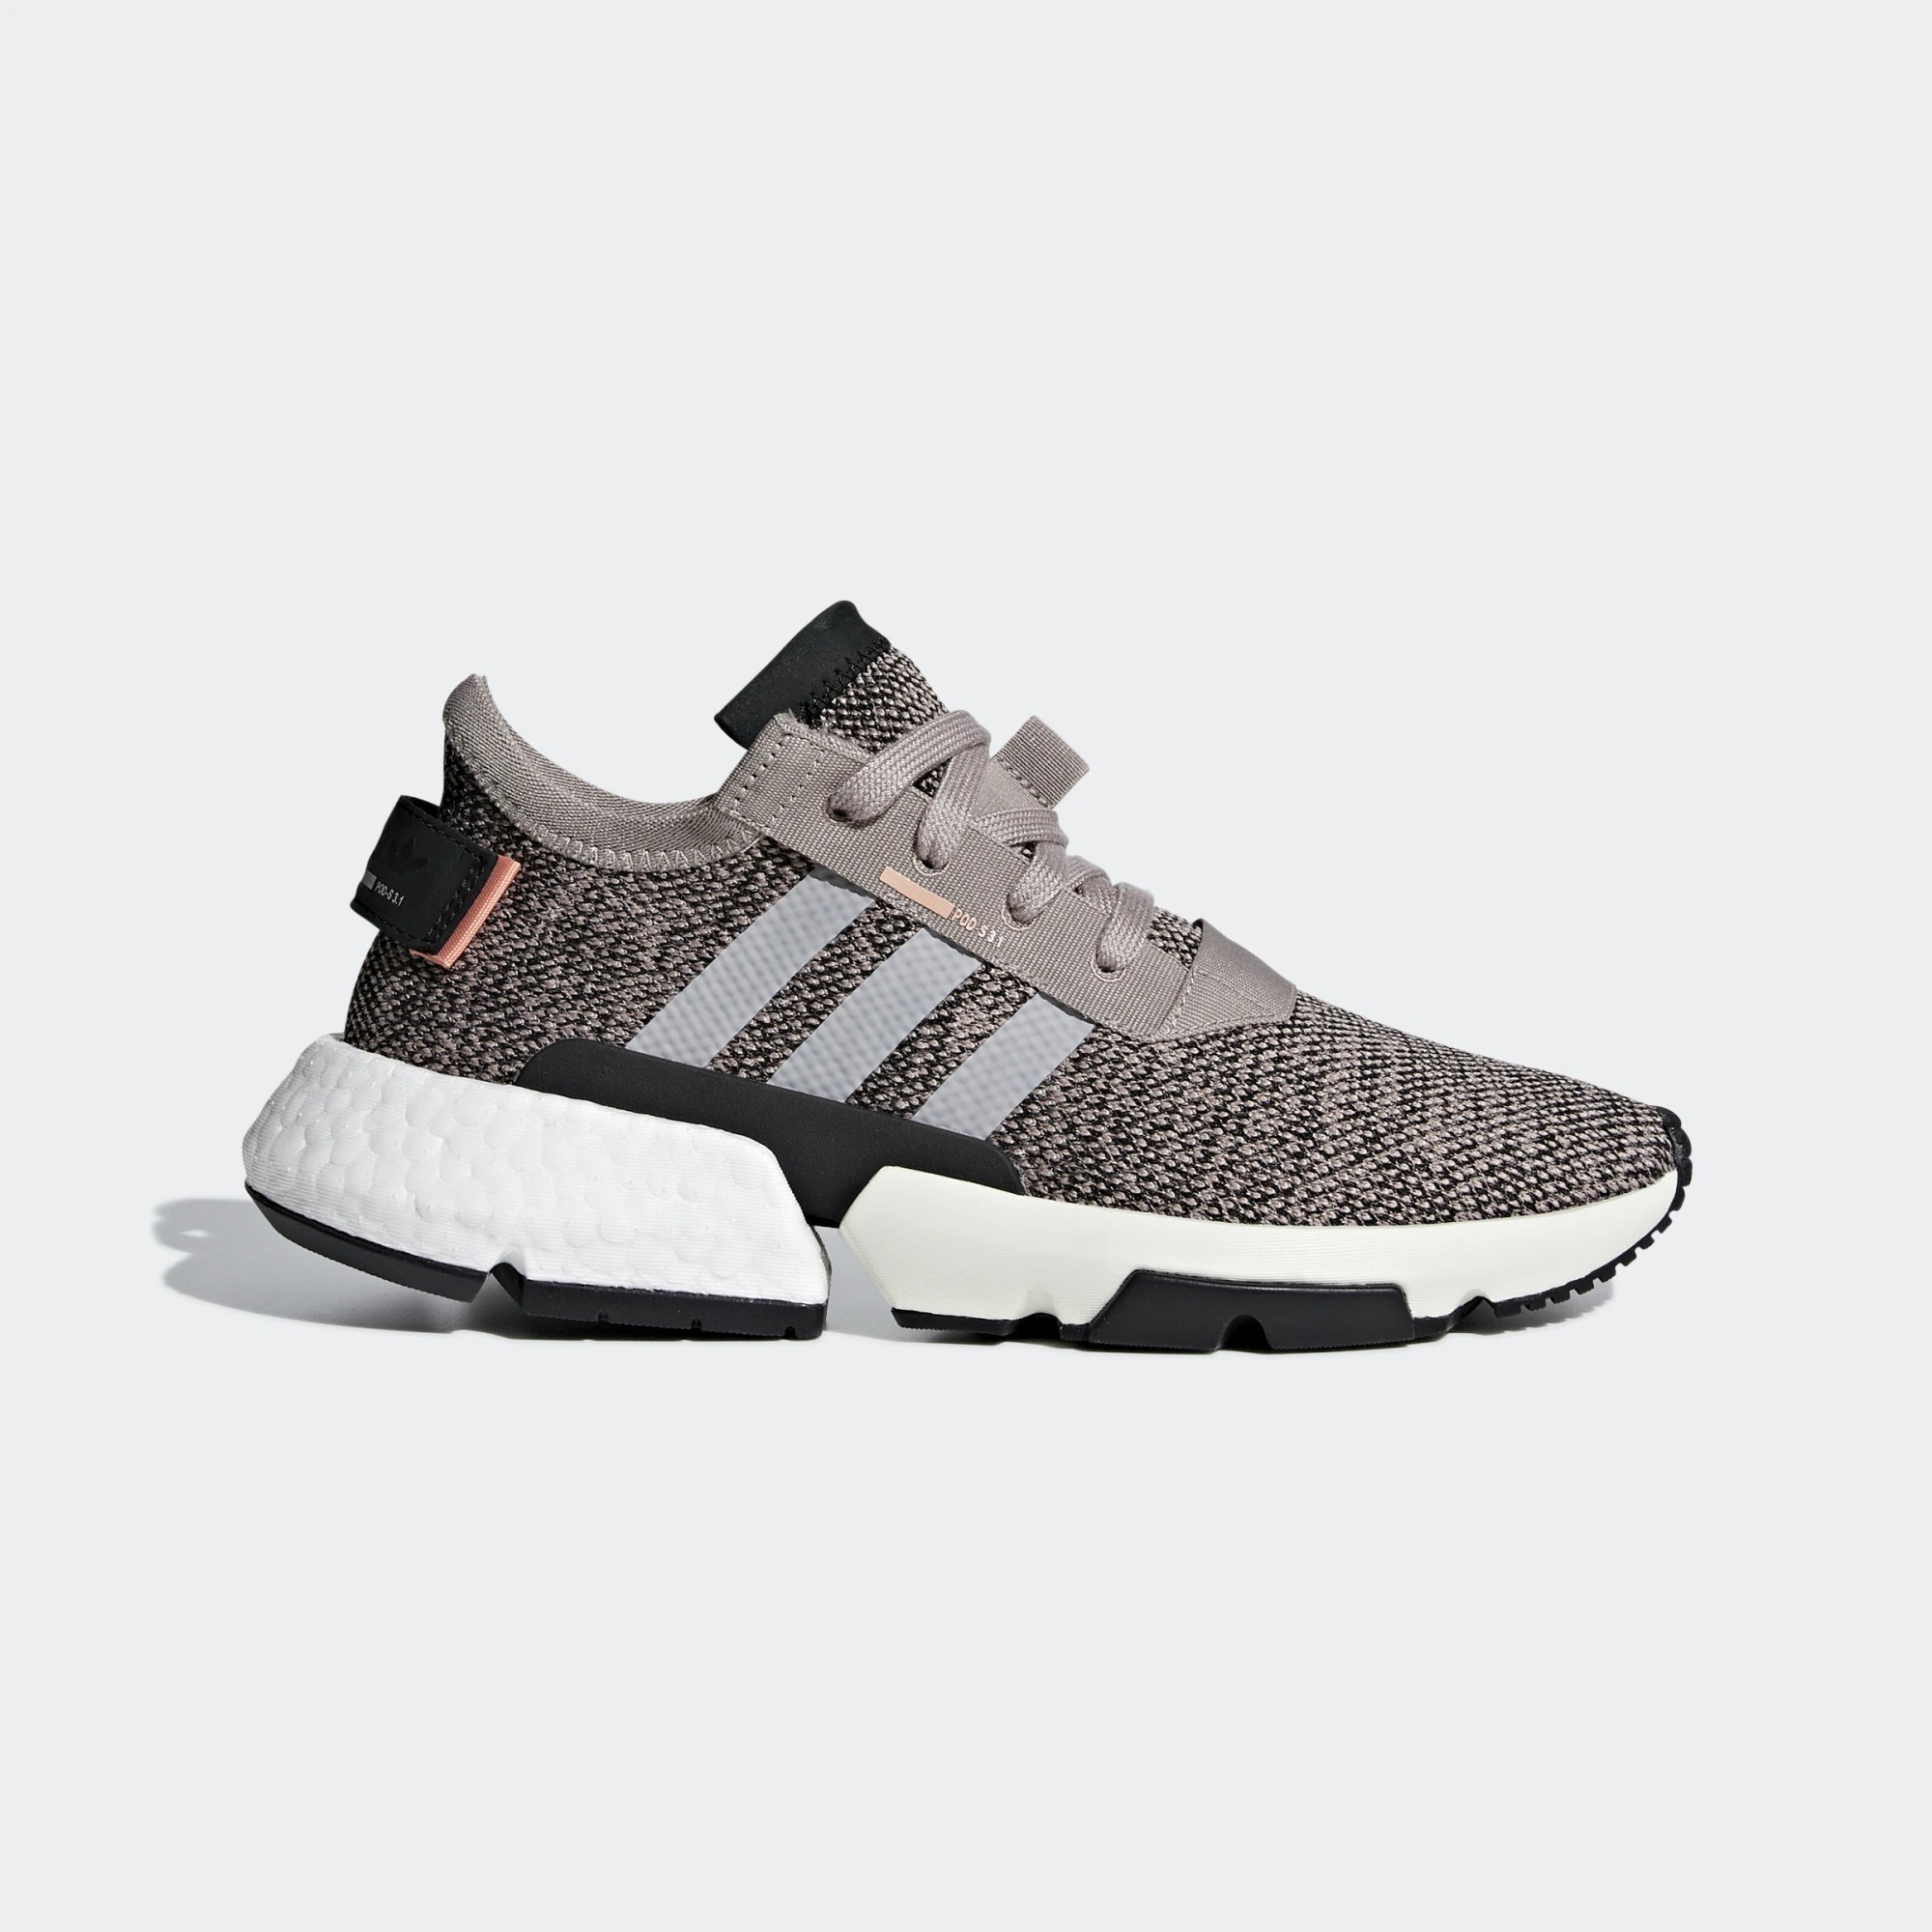 adidas POD-S3.1 Chaussures Gris G54745